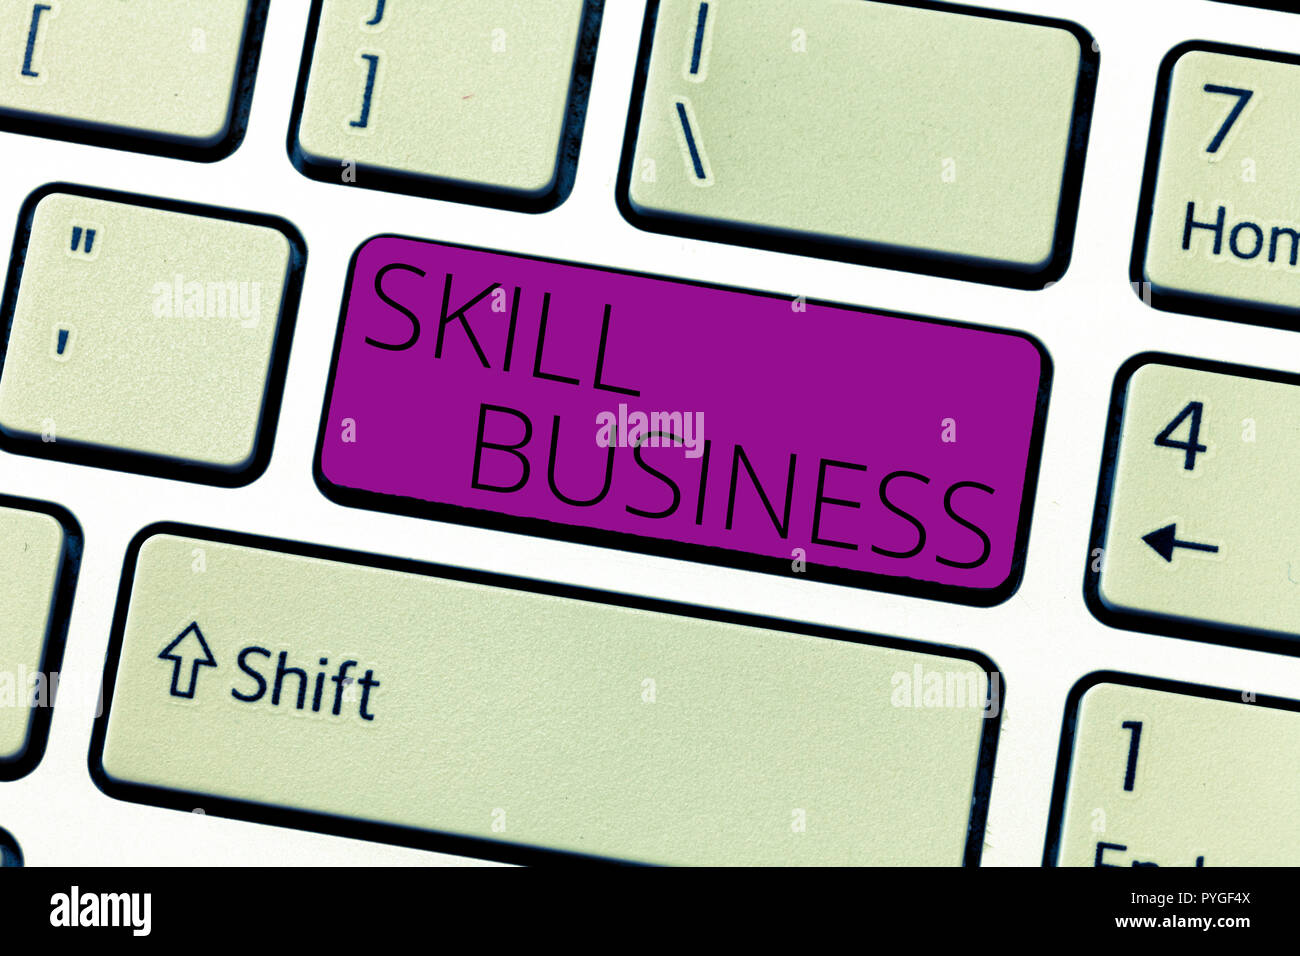 Text sign showing Skill Business. Conceptual photo Ability to handle business venture Intellectual expertise. - Stock Image